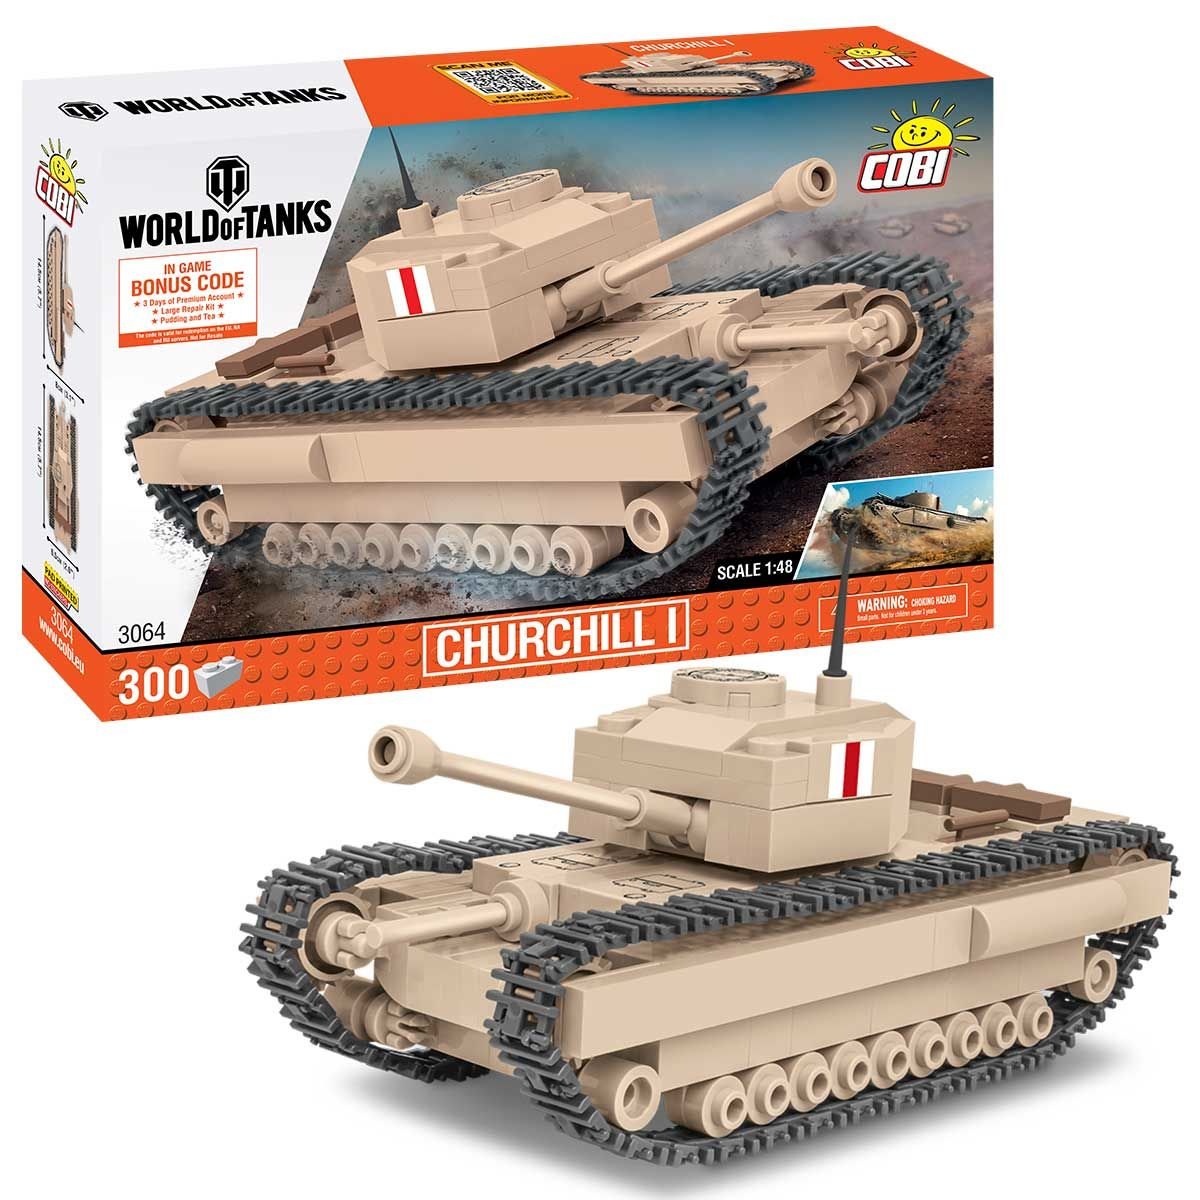 Churchill I (3064) Cobi 'World of Tanks' 1:48 scale